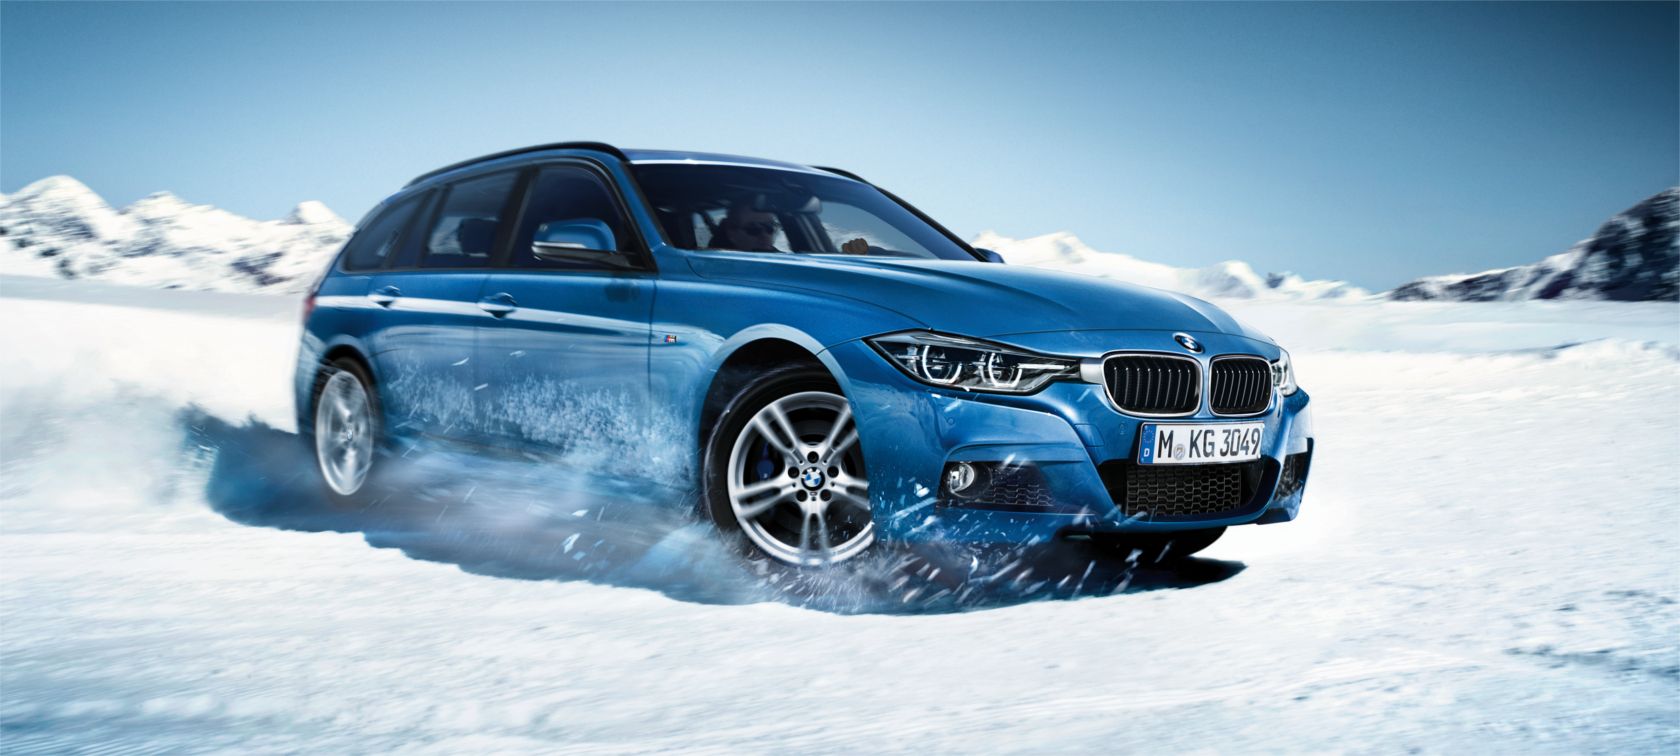 BMW accessories and service offers for autumn and winter